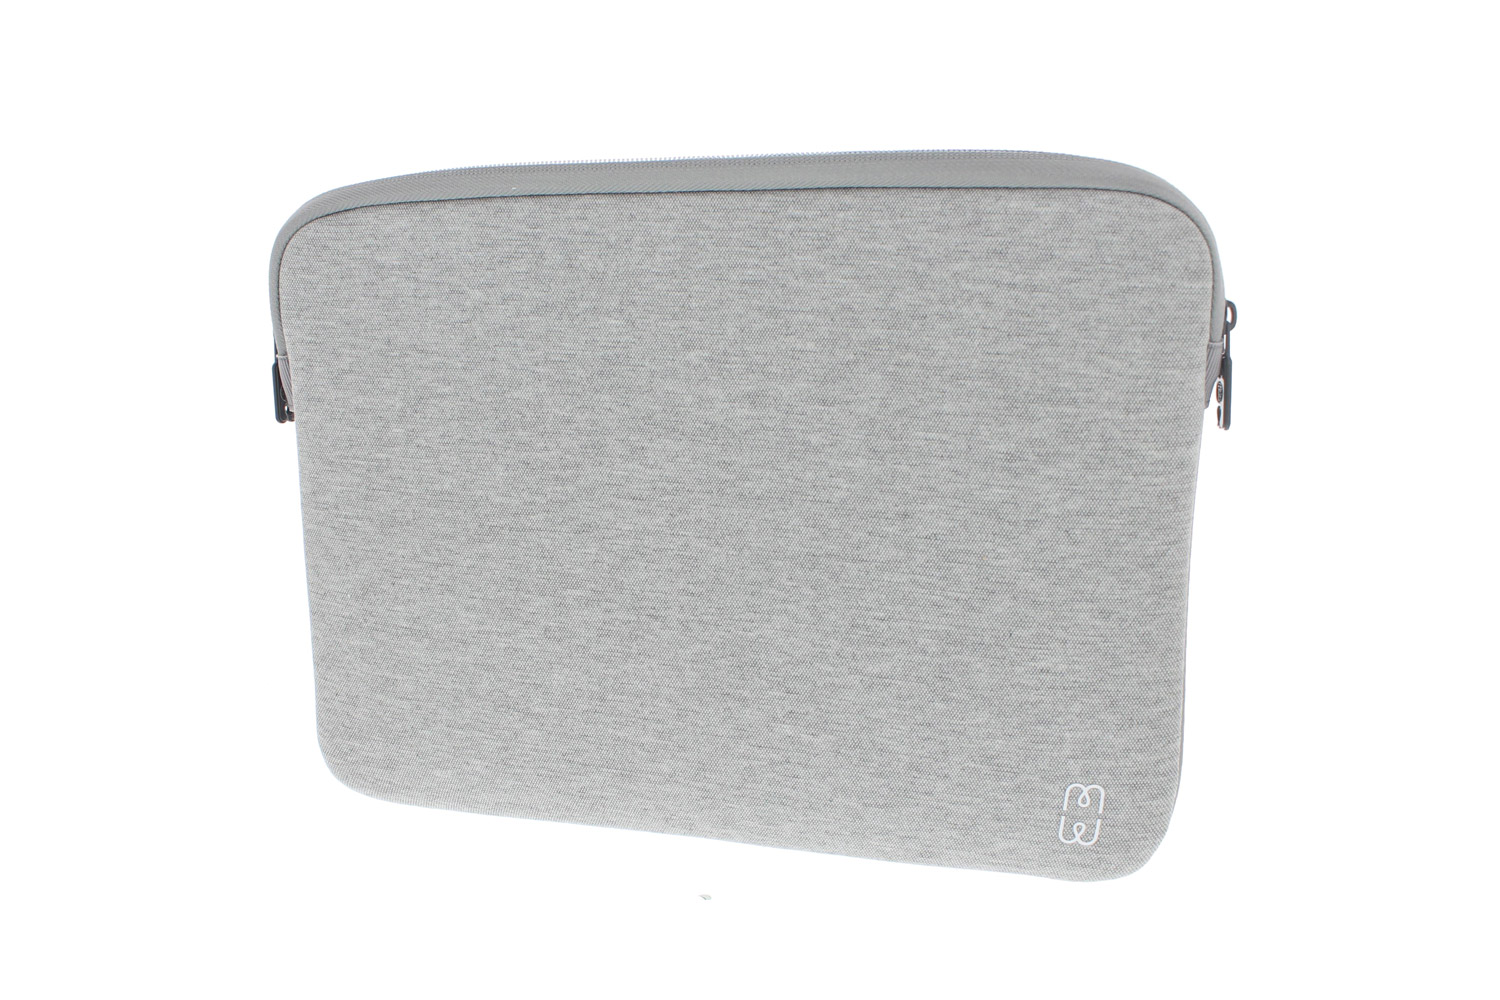 Housse pour macbook pro retina 15 gris blanc mw for Housse macbook pro retina